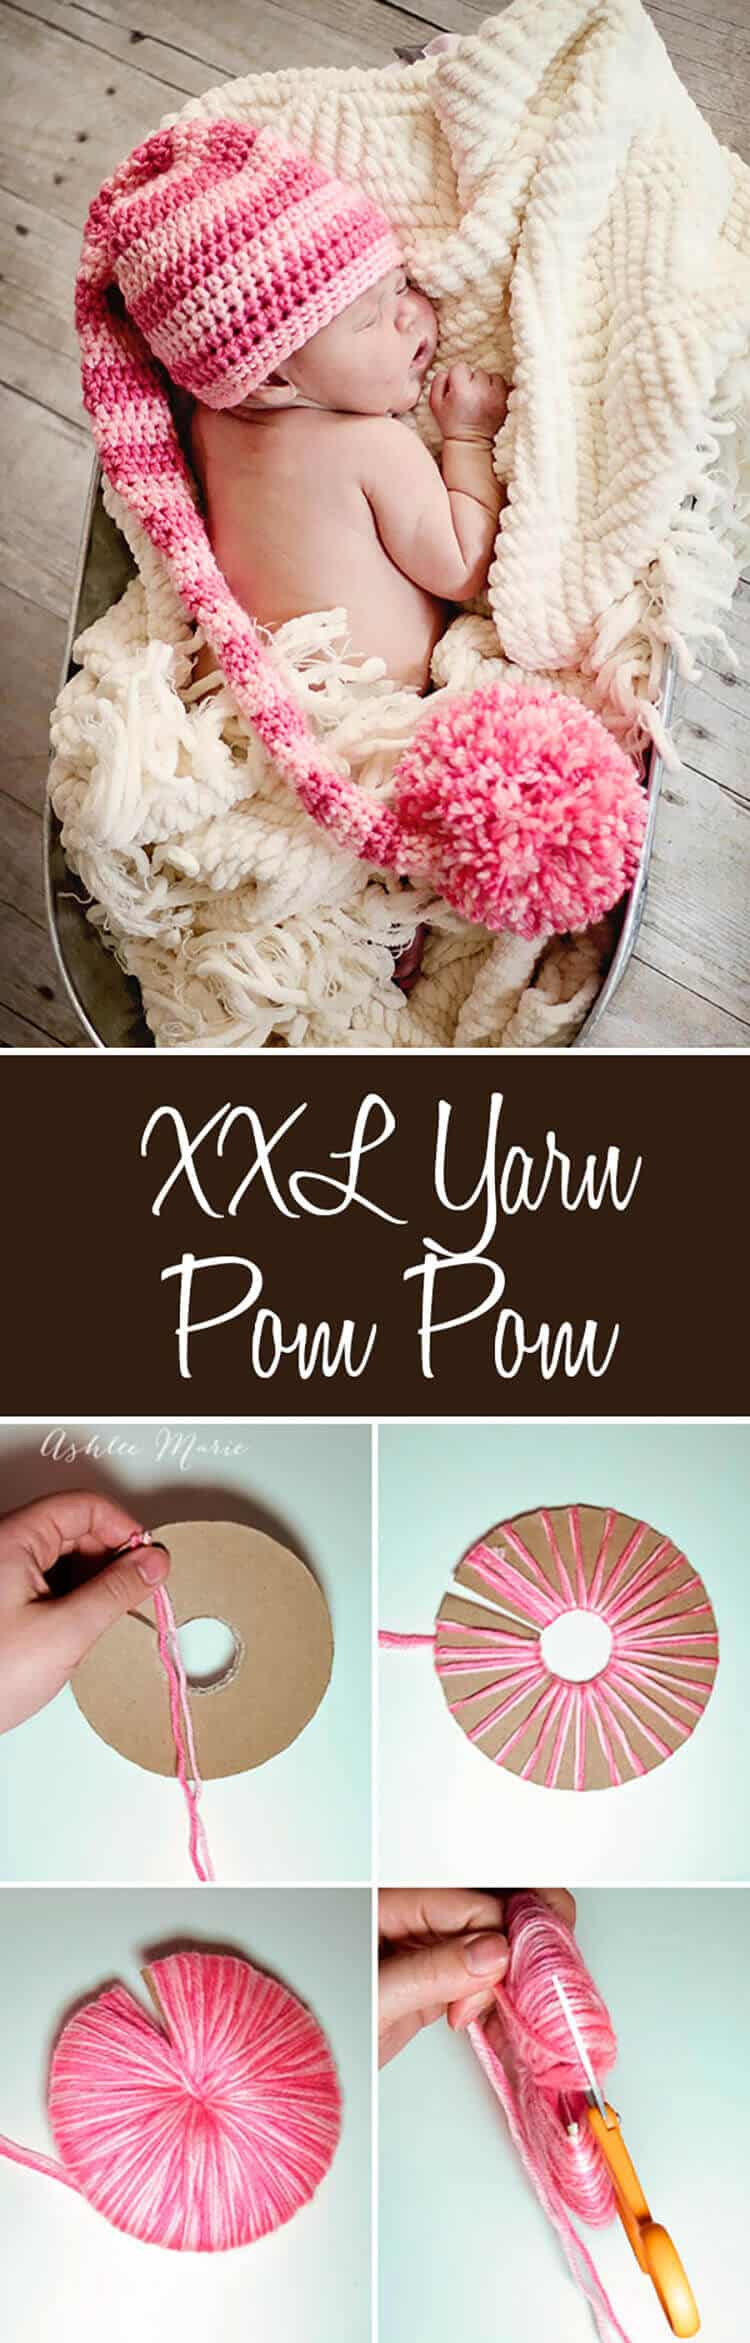 it's easy to make an extra EXTRA large yarn pom pom to add to any project